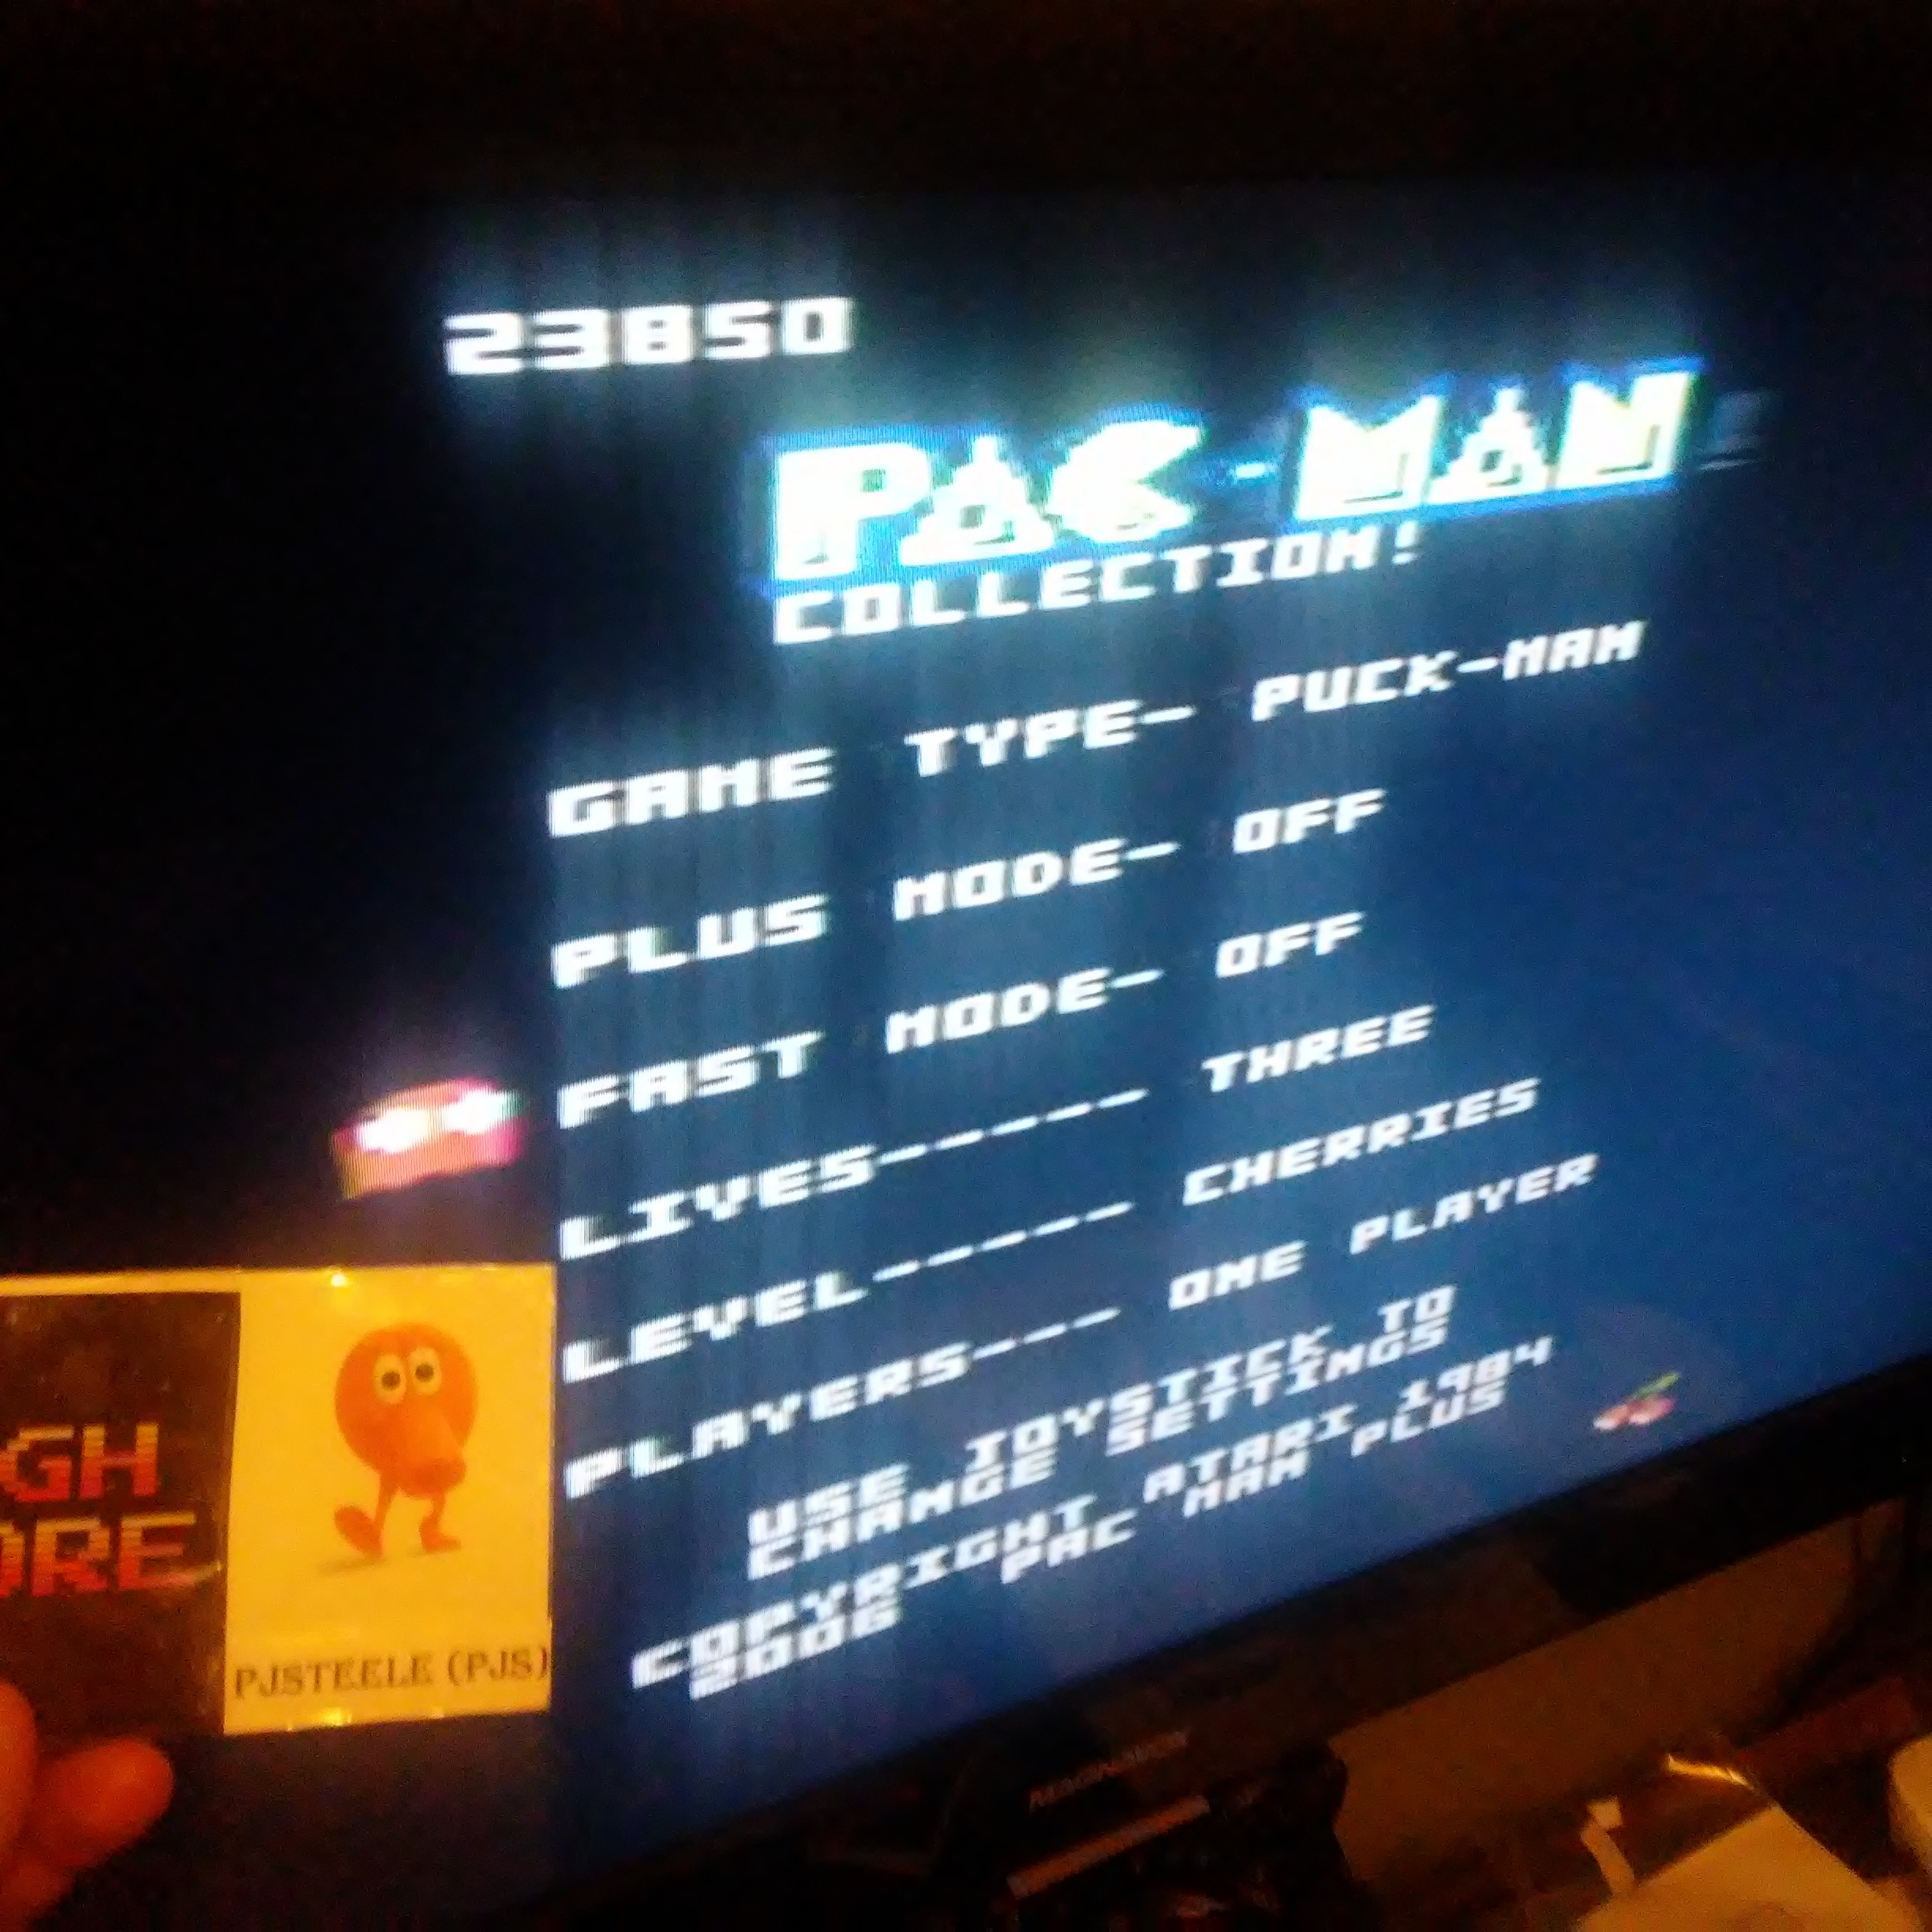 Pac-Man Collection: Puck Man [Cherries/Plus Off/Fast Off] 23,850 points